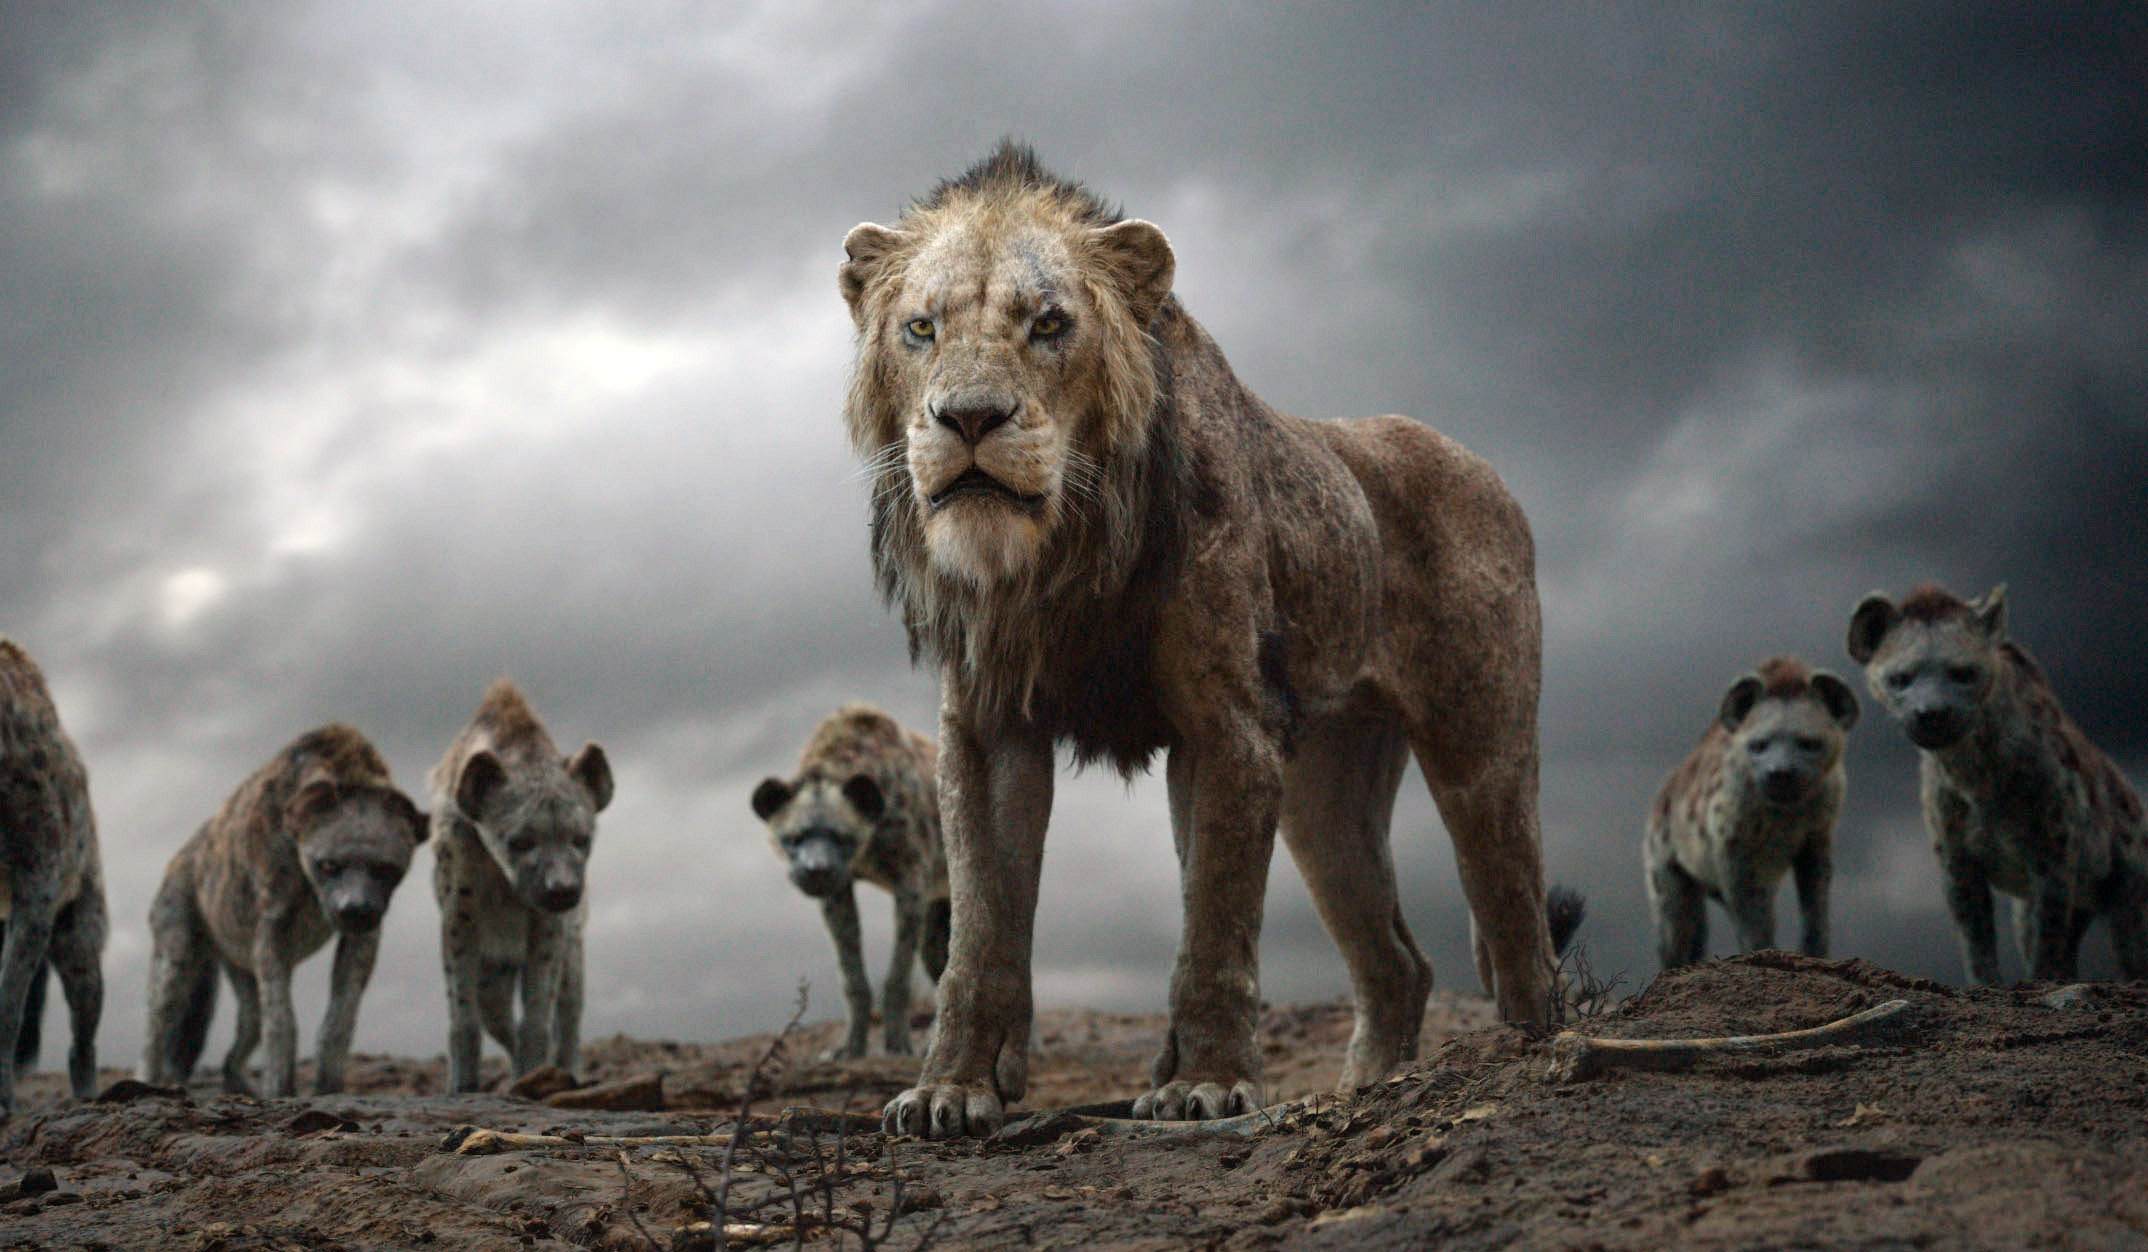 The Lion King S Behind The Scenes Special Effects Secrets Revealed Video